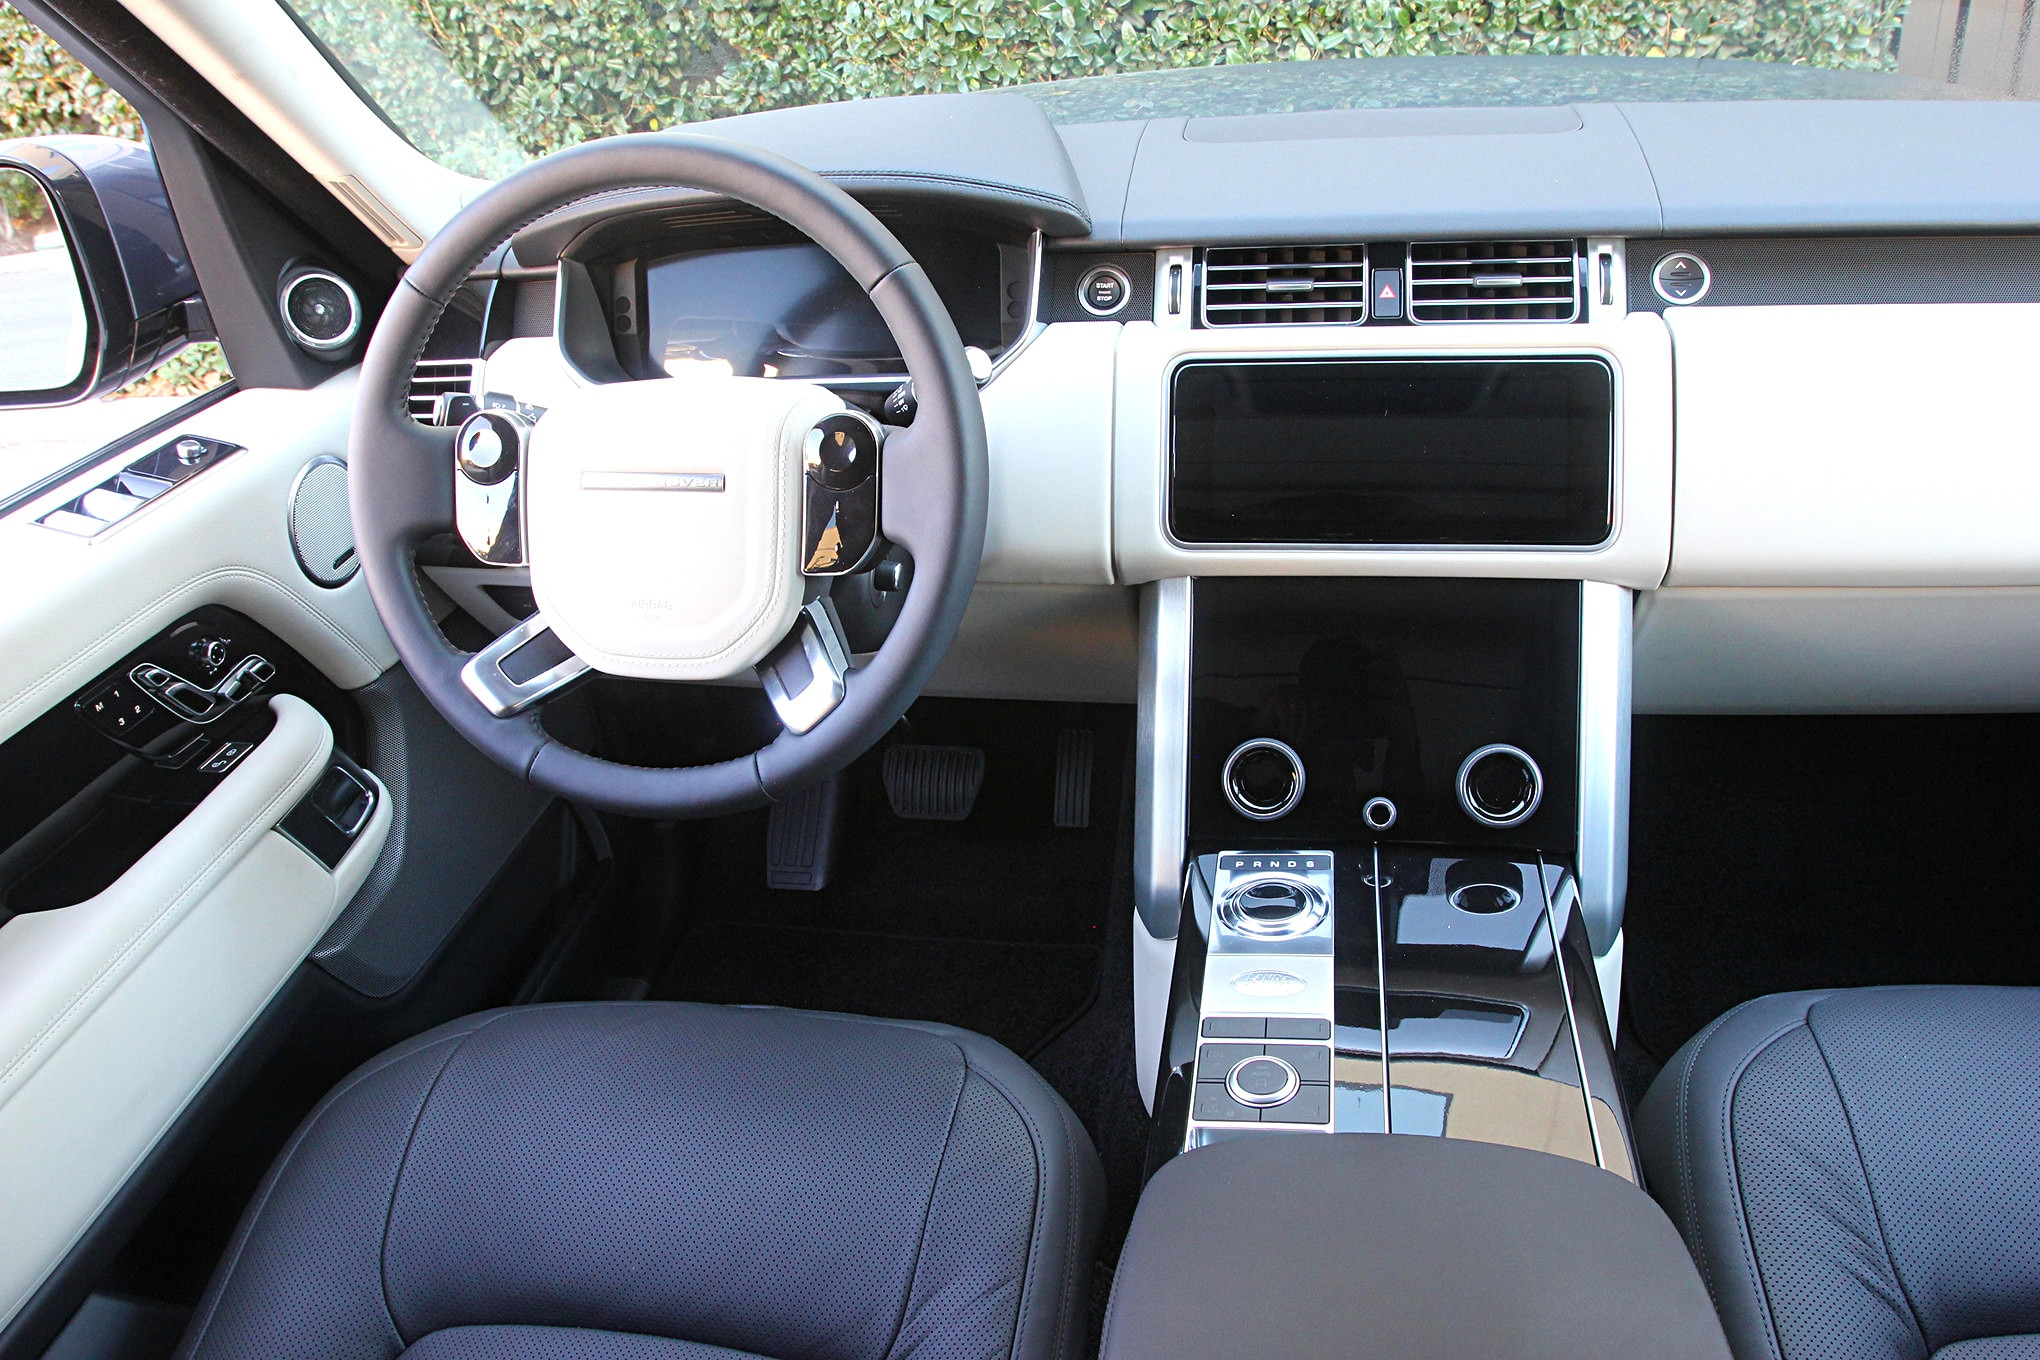 2019 suv of the year land rover range rover HSE P400e interior.JPG